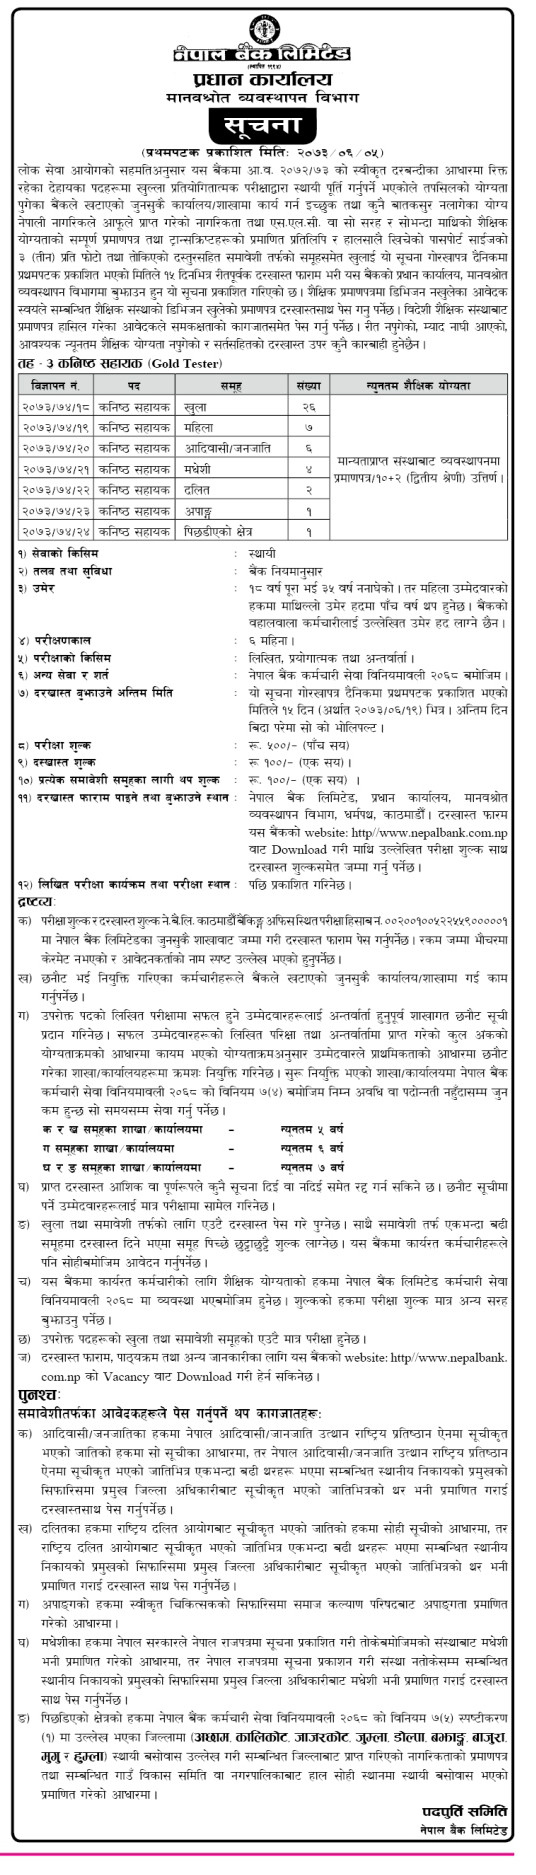 Great employment opportunity in Nepal Bank Limited